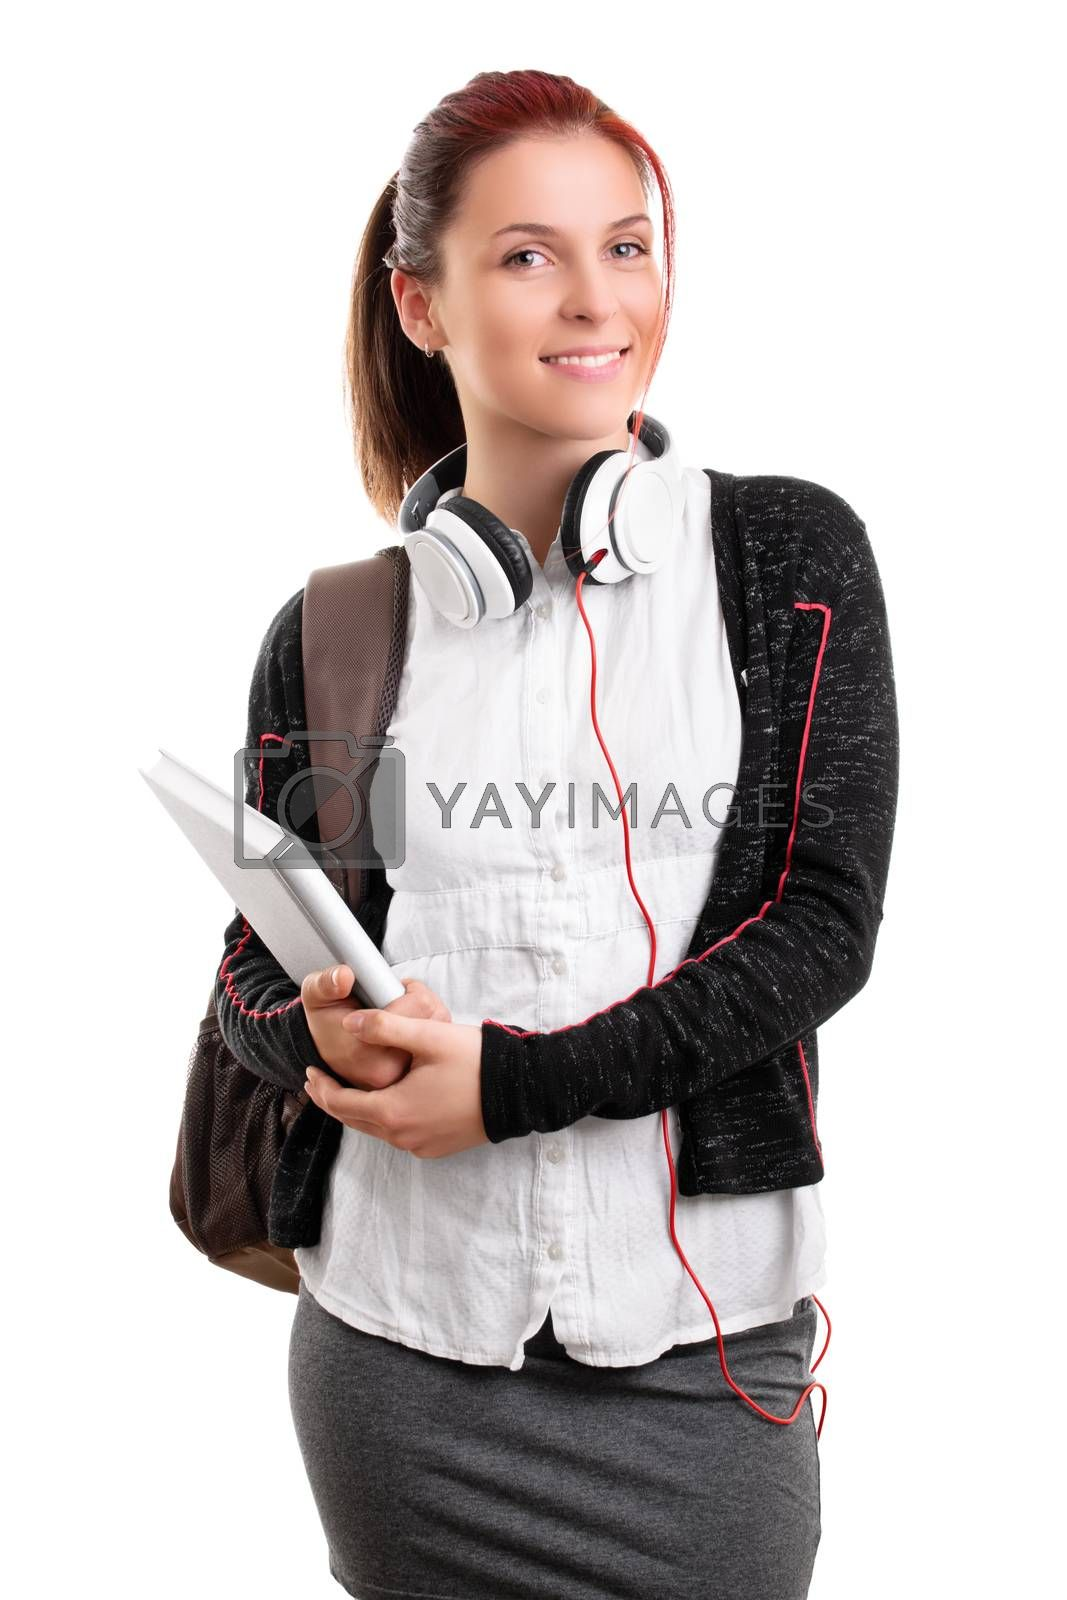 Beautiful smiling young girl in schoolgirl uniform with backpack and headphones, holding a notebook, isolated on white background. Student ready for class. Education concept.